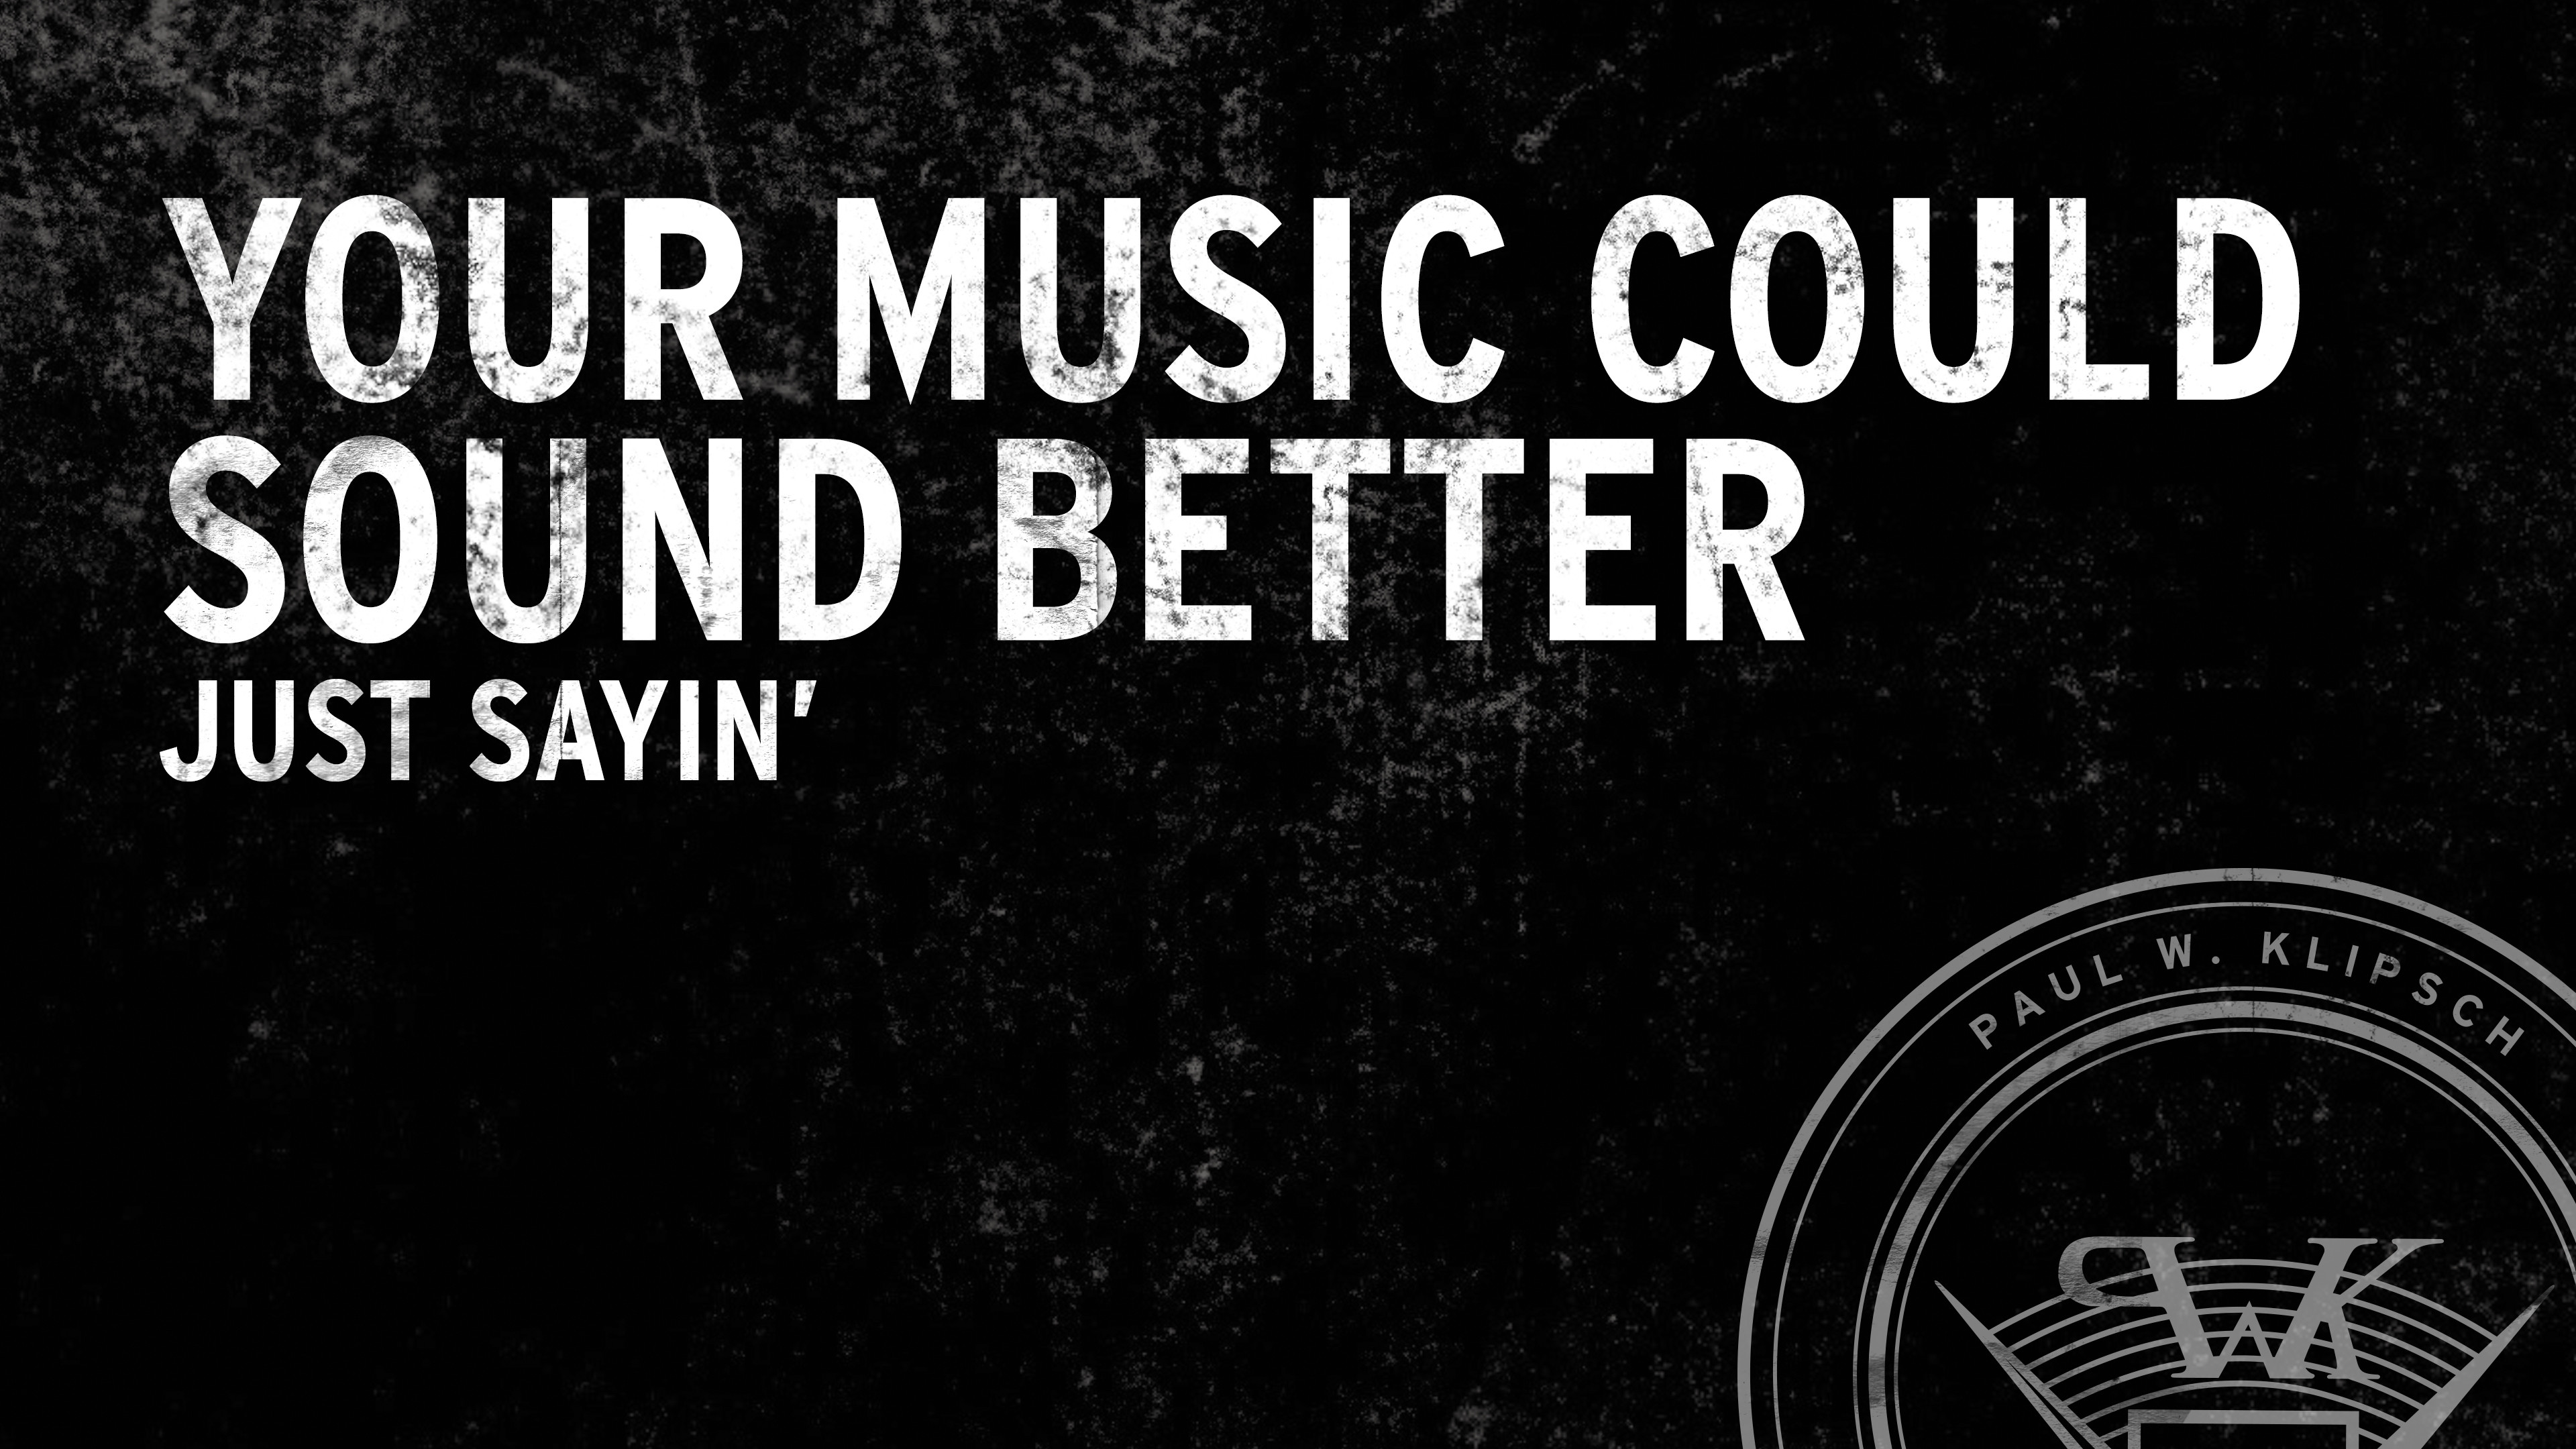 YOUR MUSIC COULD SOUND BETTER